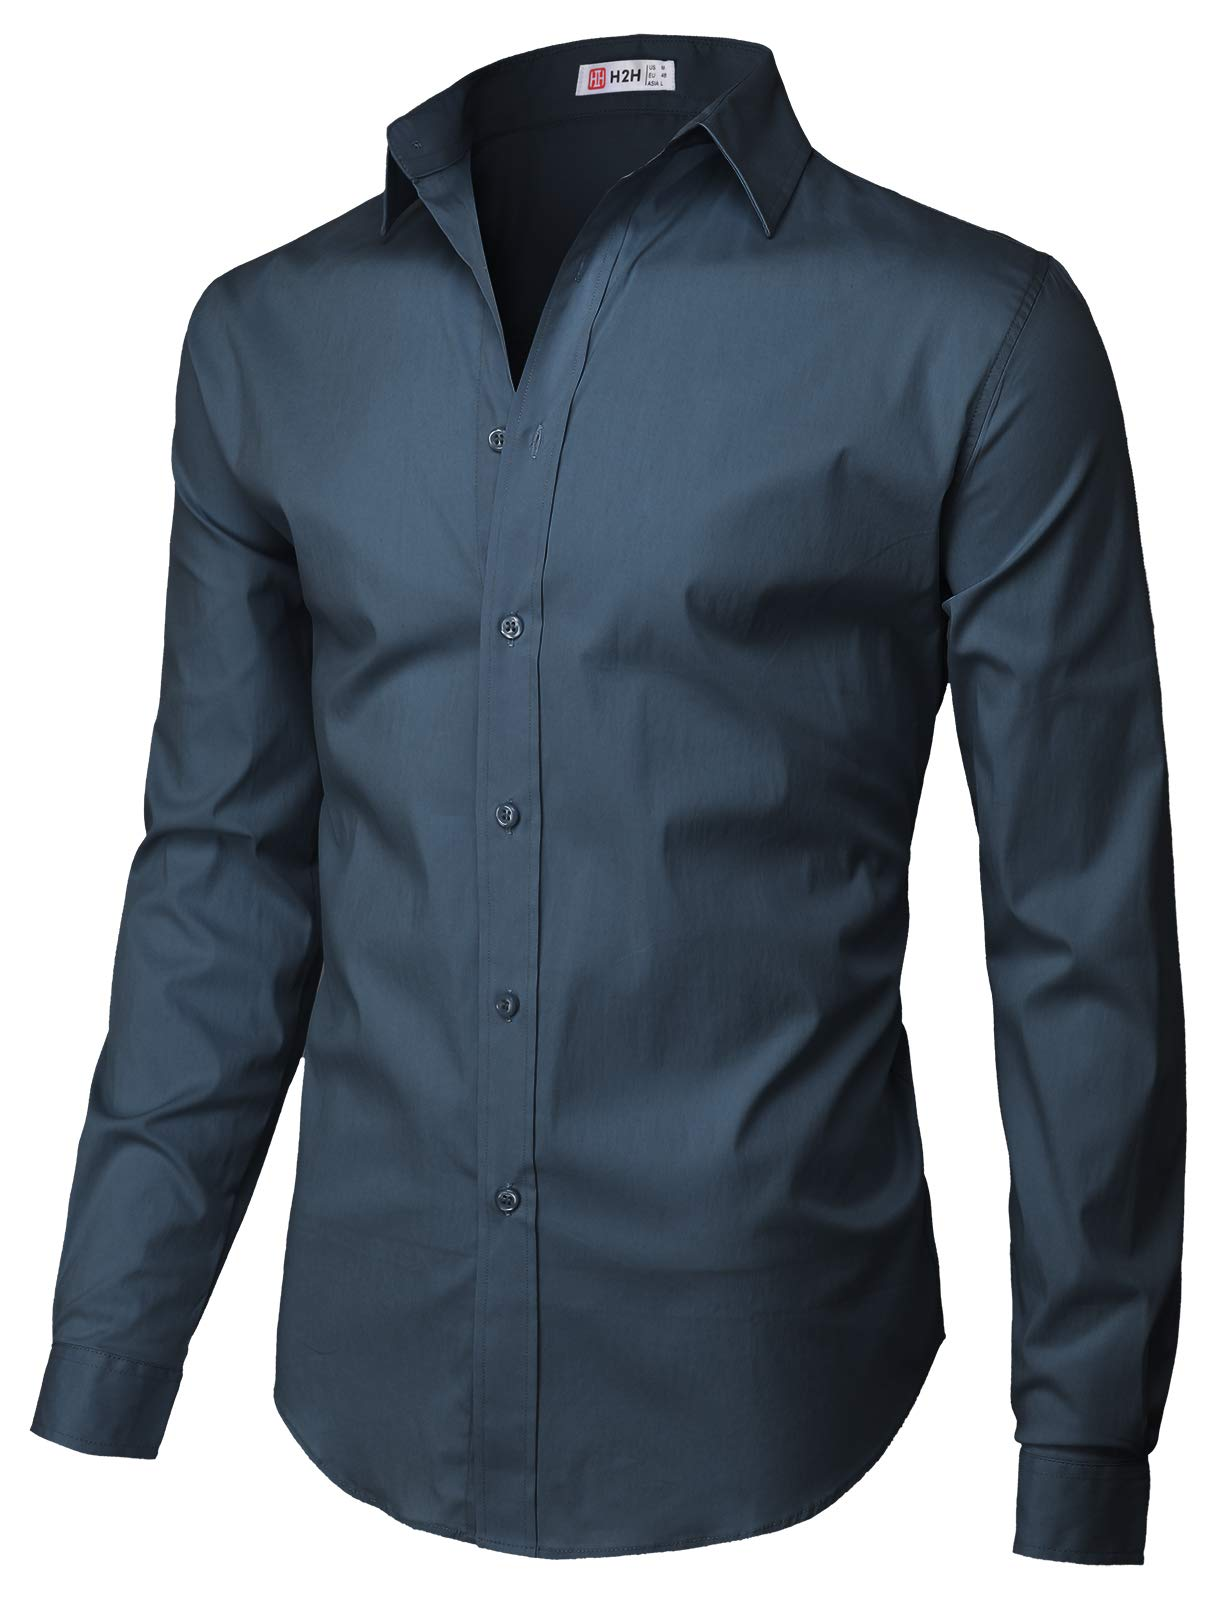 H2H Mens Casual Slim Fit Button Down Spandex Premium Long Sleeve Shirts Navy US 2XL/Asia 3XL (CMTSTL0134)